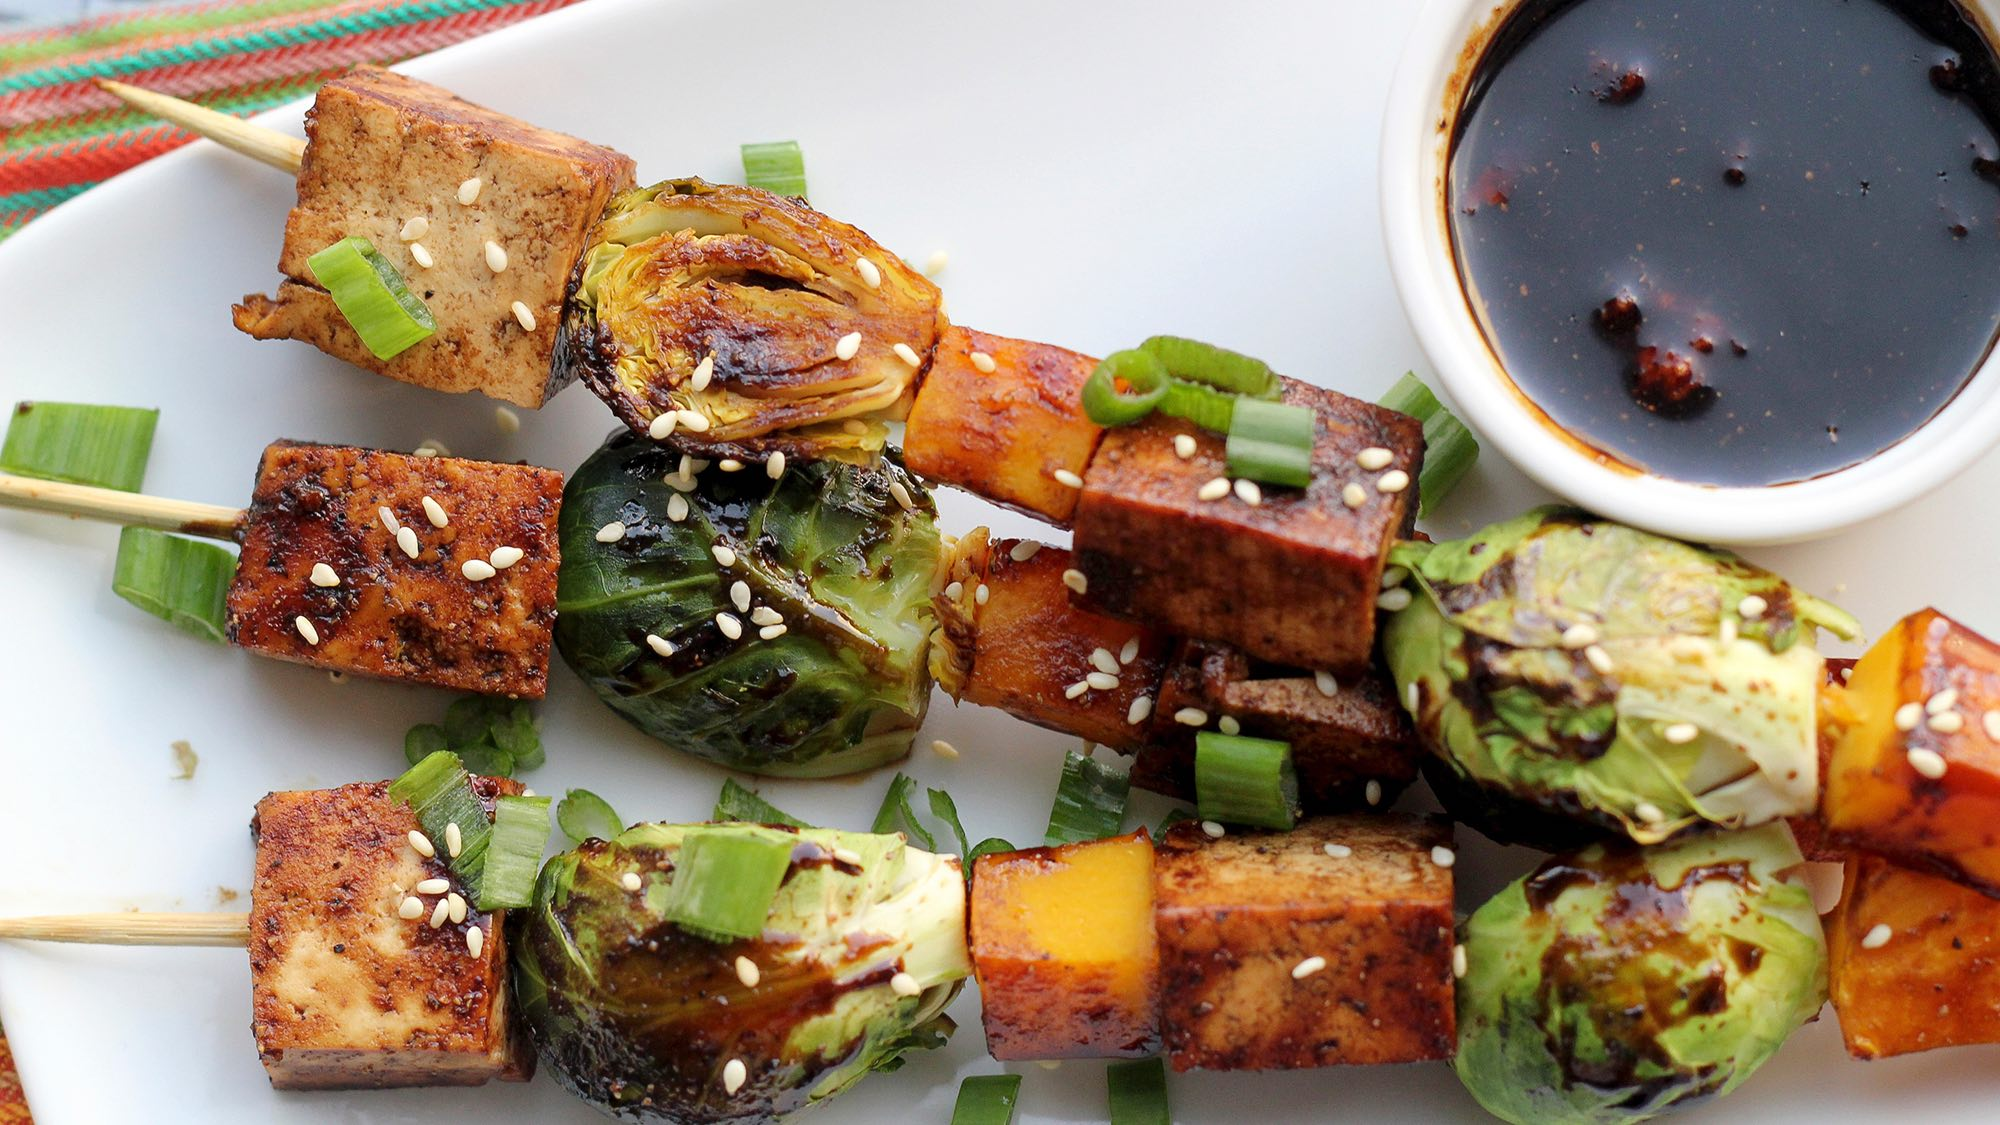 McCormick Tofu Butternut Squash and Brussels Sprout Skewers